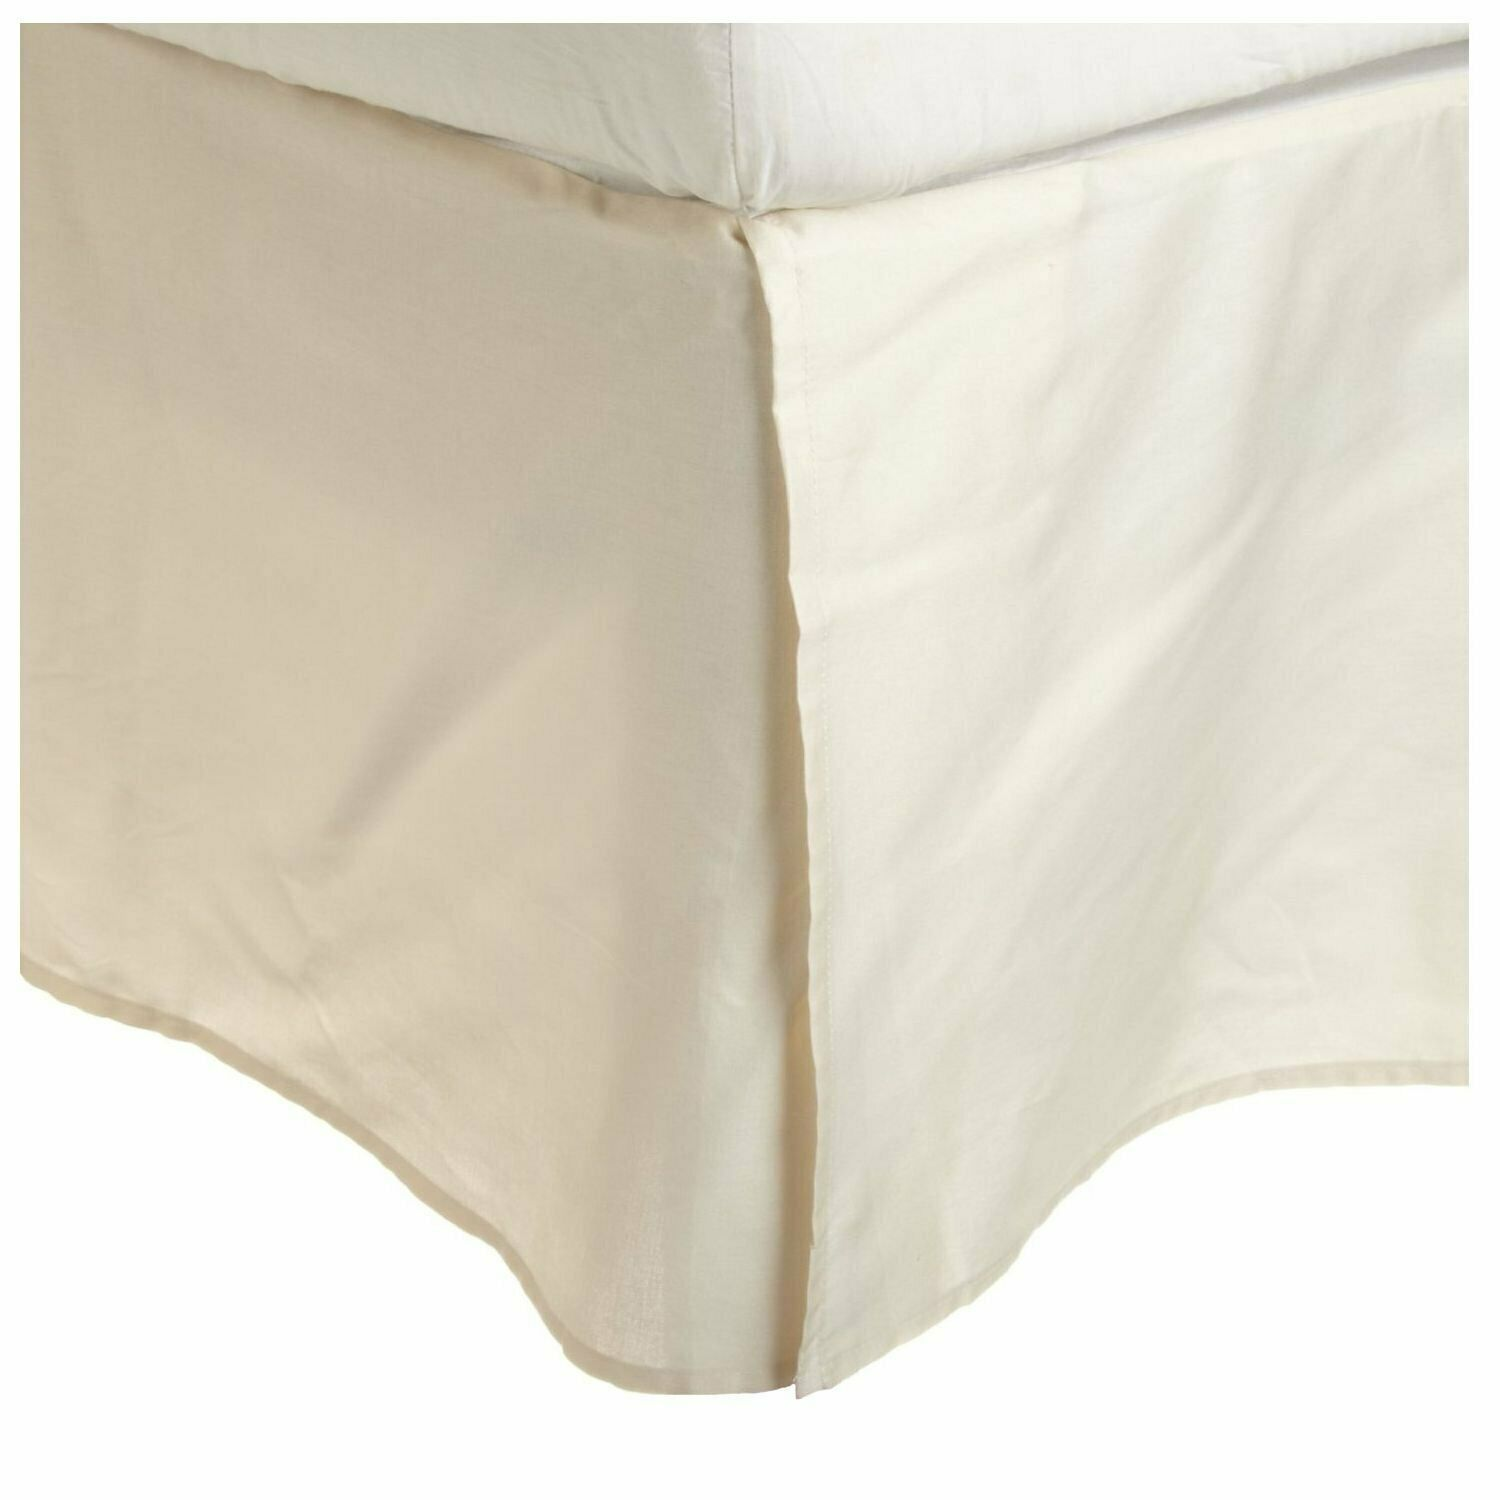 1Qty Bed Skirt All Size US 100% Pima Cotton-1000 Thread - Ivory Solid